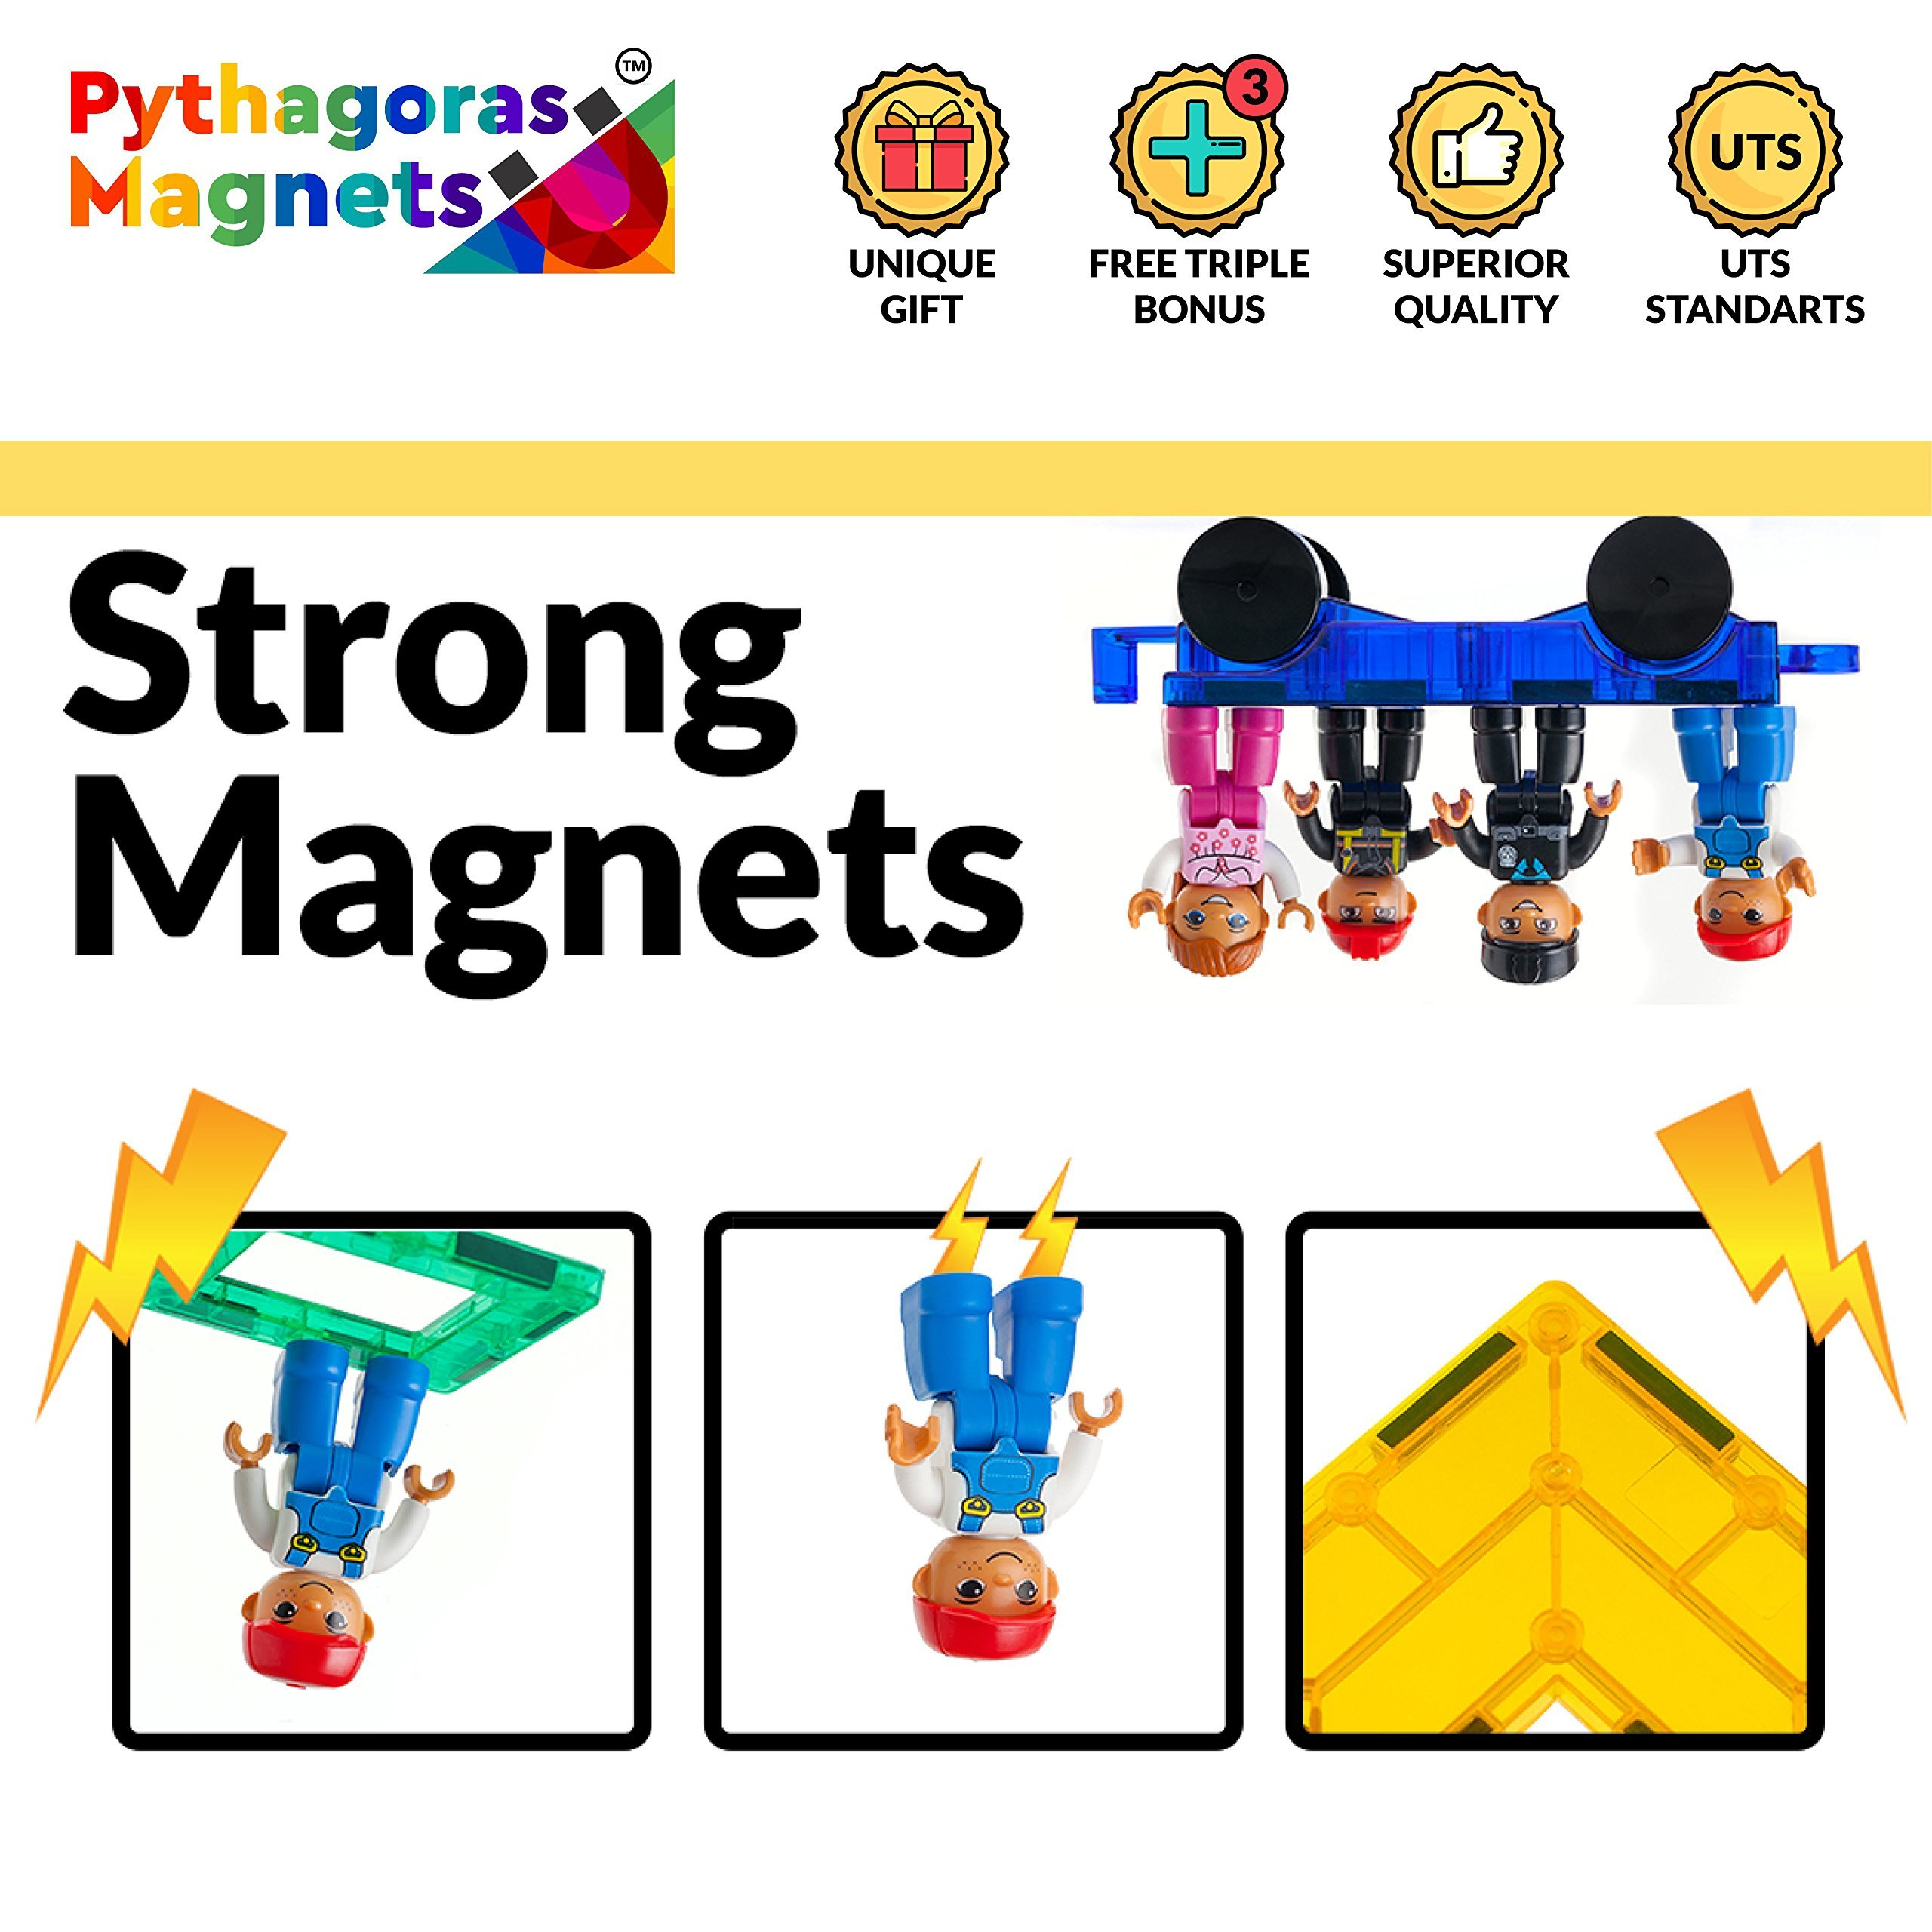 Magnetic Figures Set of 4-Toddlers Community Action Toy People, Magnetic Tiles Expansion Pack for Boys and Girls - Nurse, Builder, Fireman, Police Educational STEM Toys Add on Sets for Magnetic Blocks by Pythagoras Magnets (Image #7)